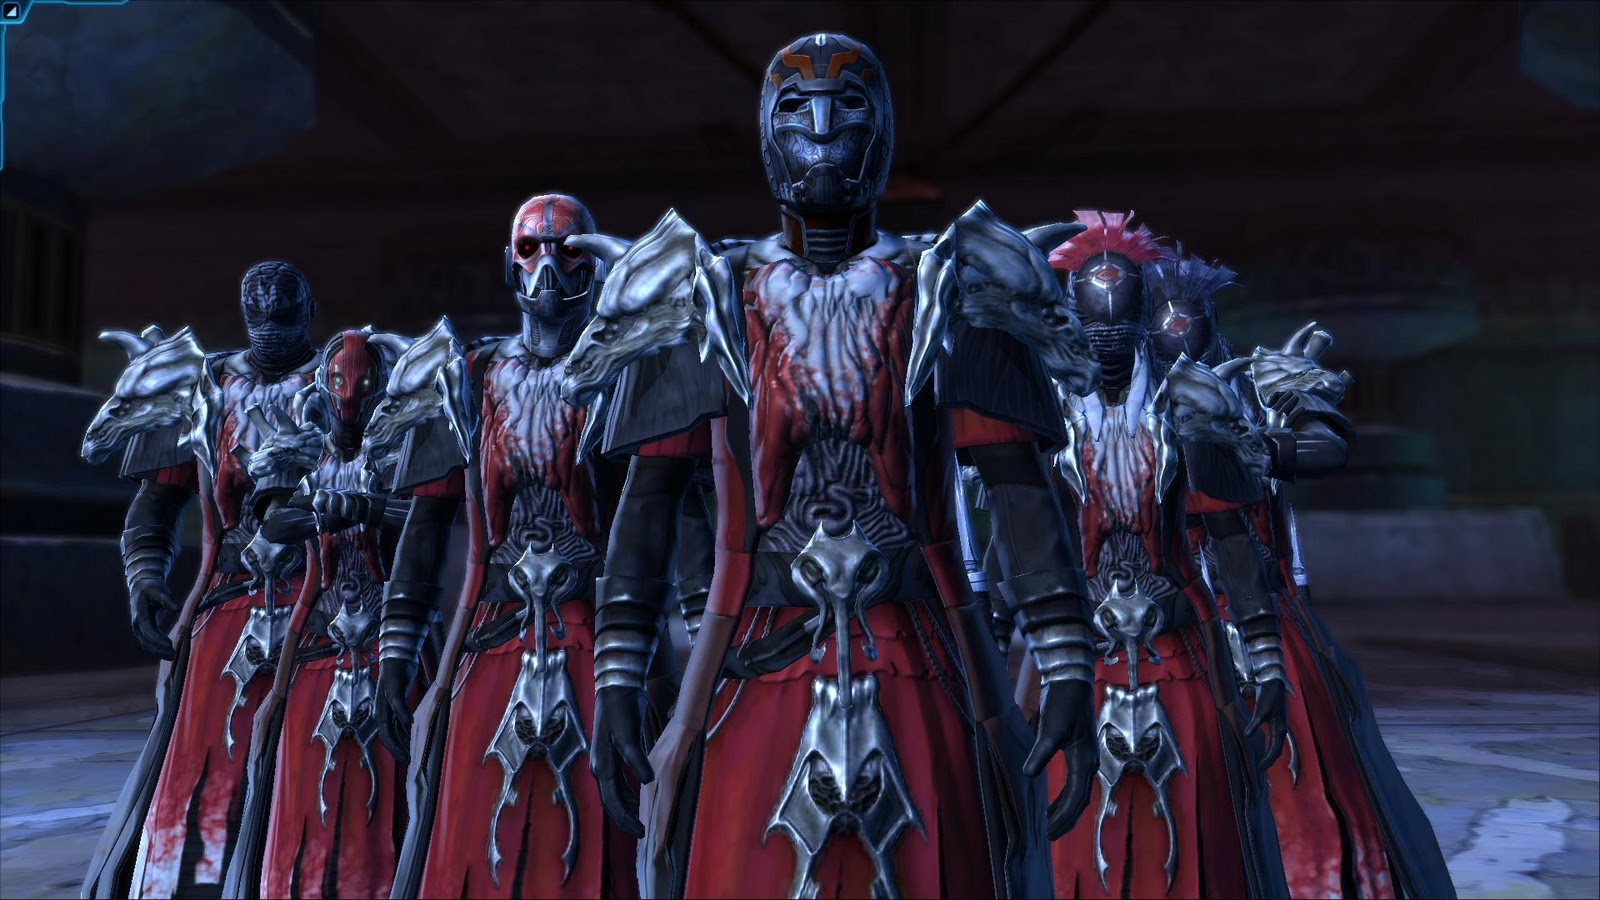 Image - Swtor full dark side sith outfit.jpg | Star Wars: The Old ...